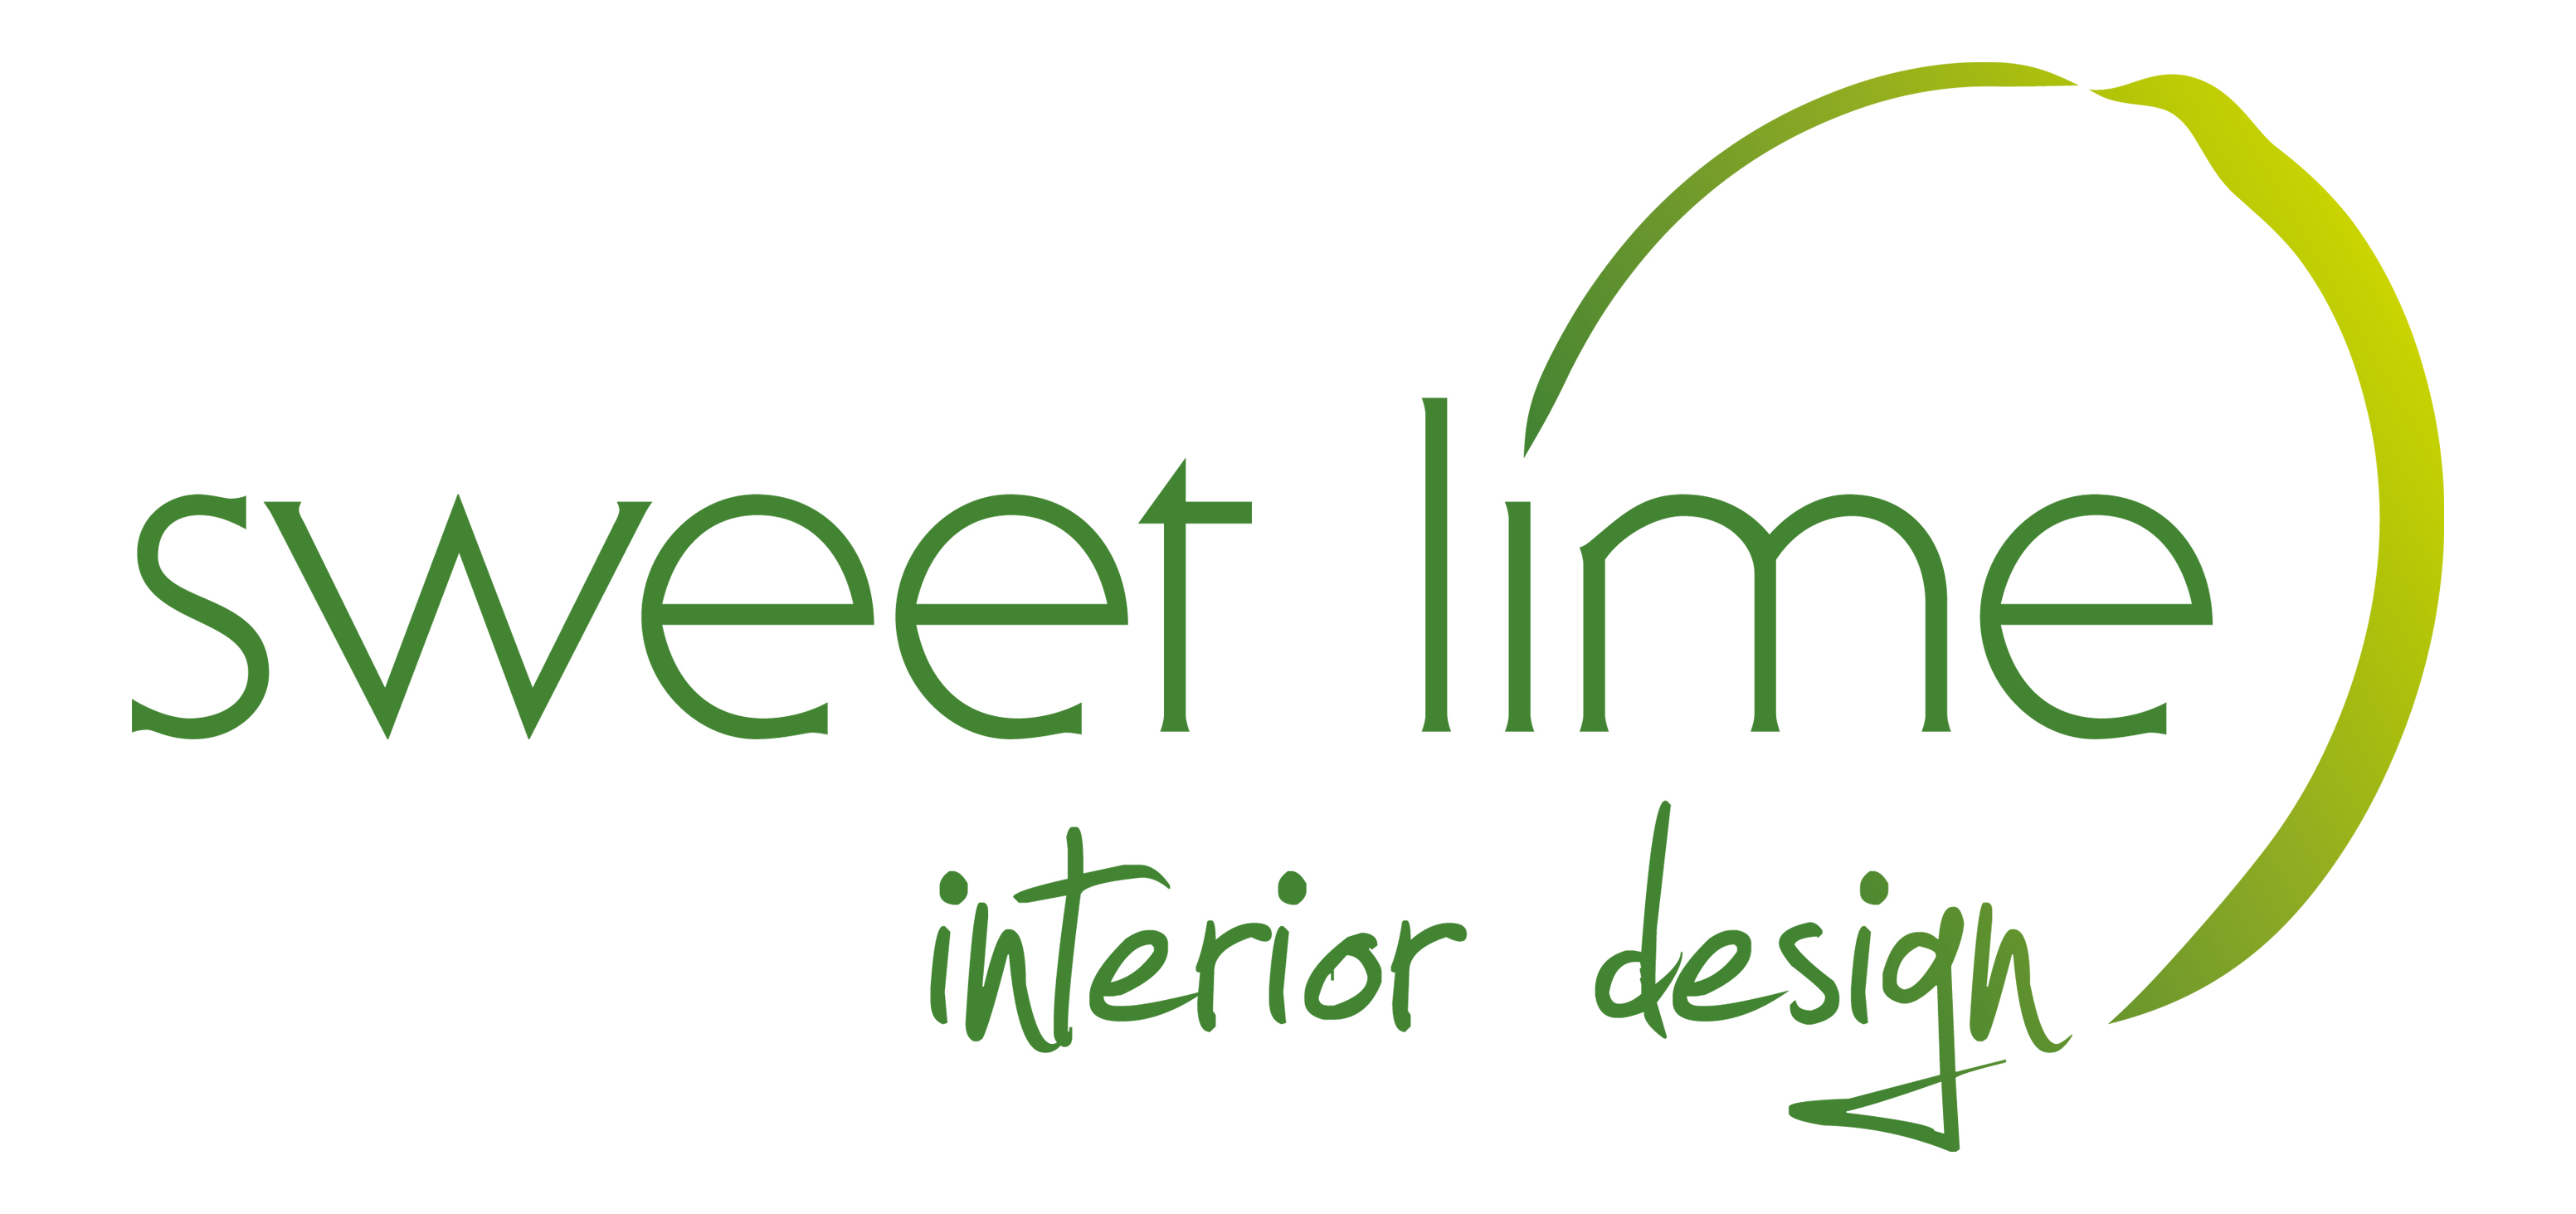 About sweet lime interior design for Interior designs logos